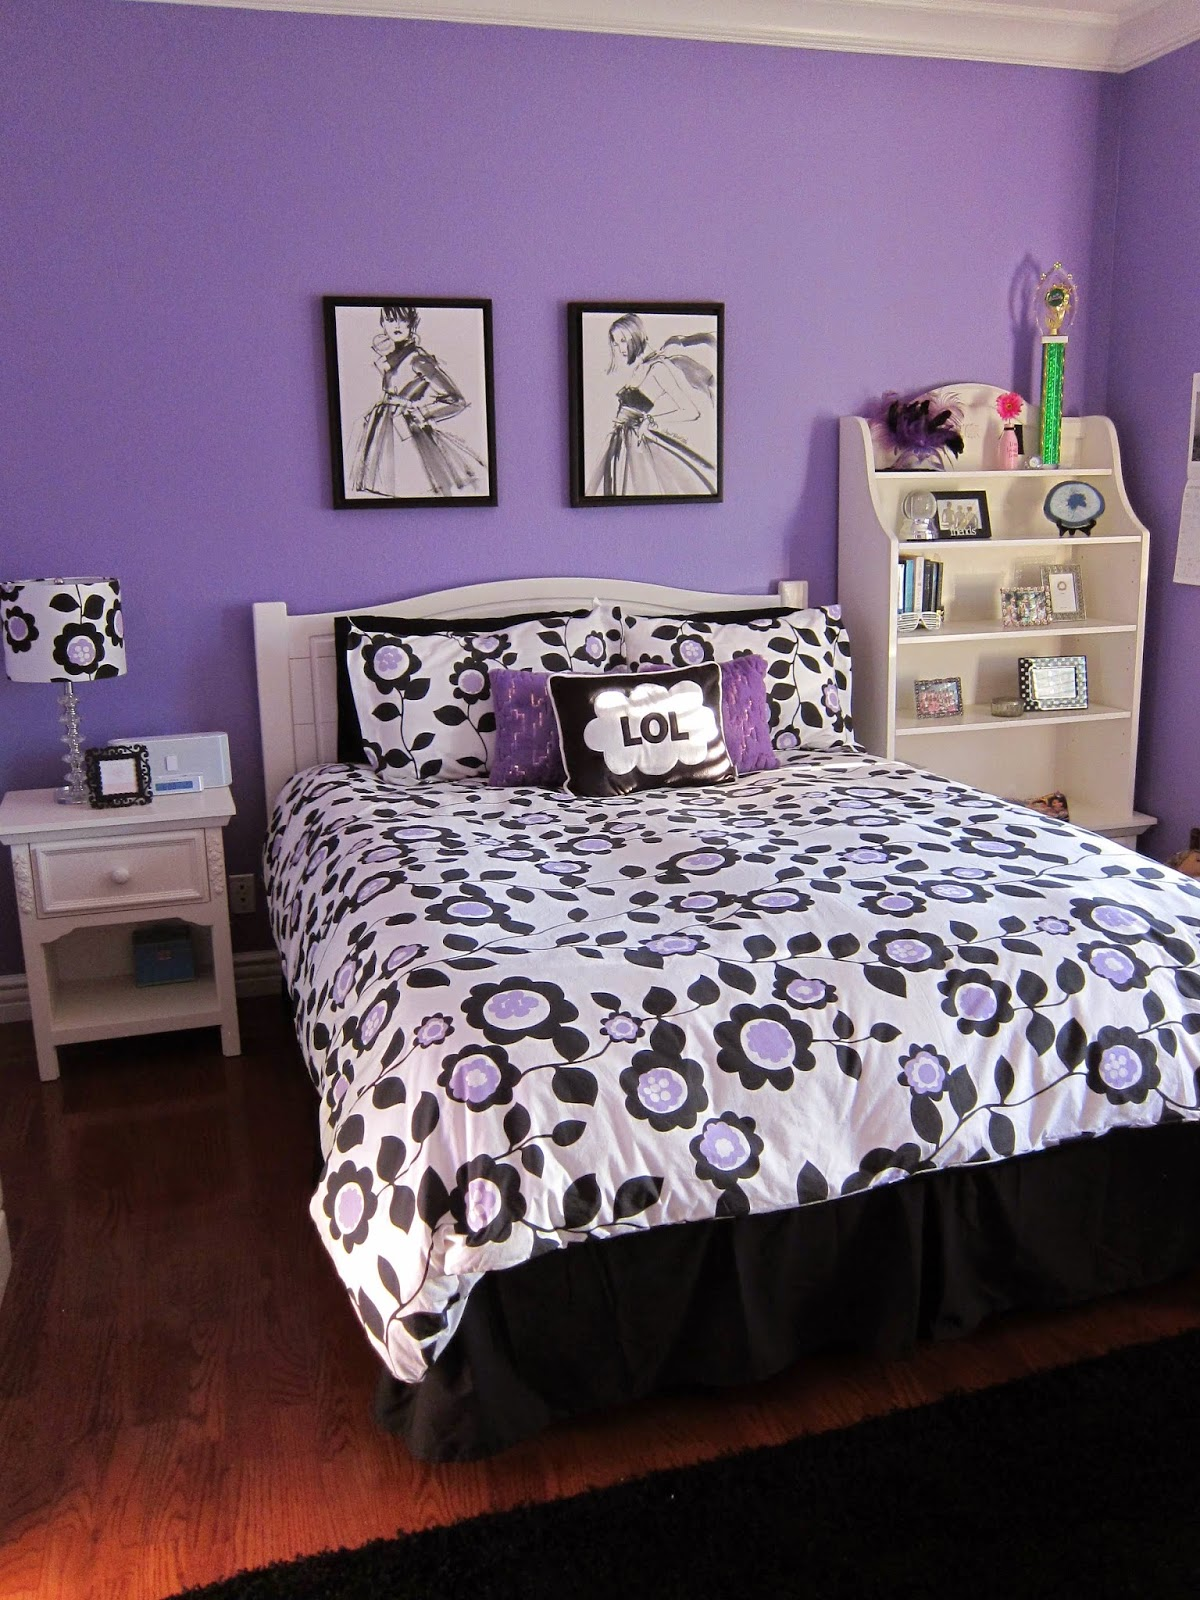 Beautiful and elegant teenagers bedroom ideas for girls for Elegant bedroom ideas for girls